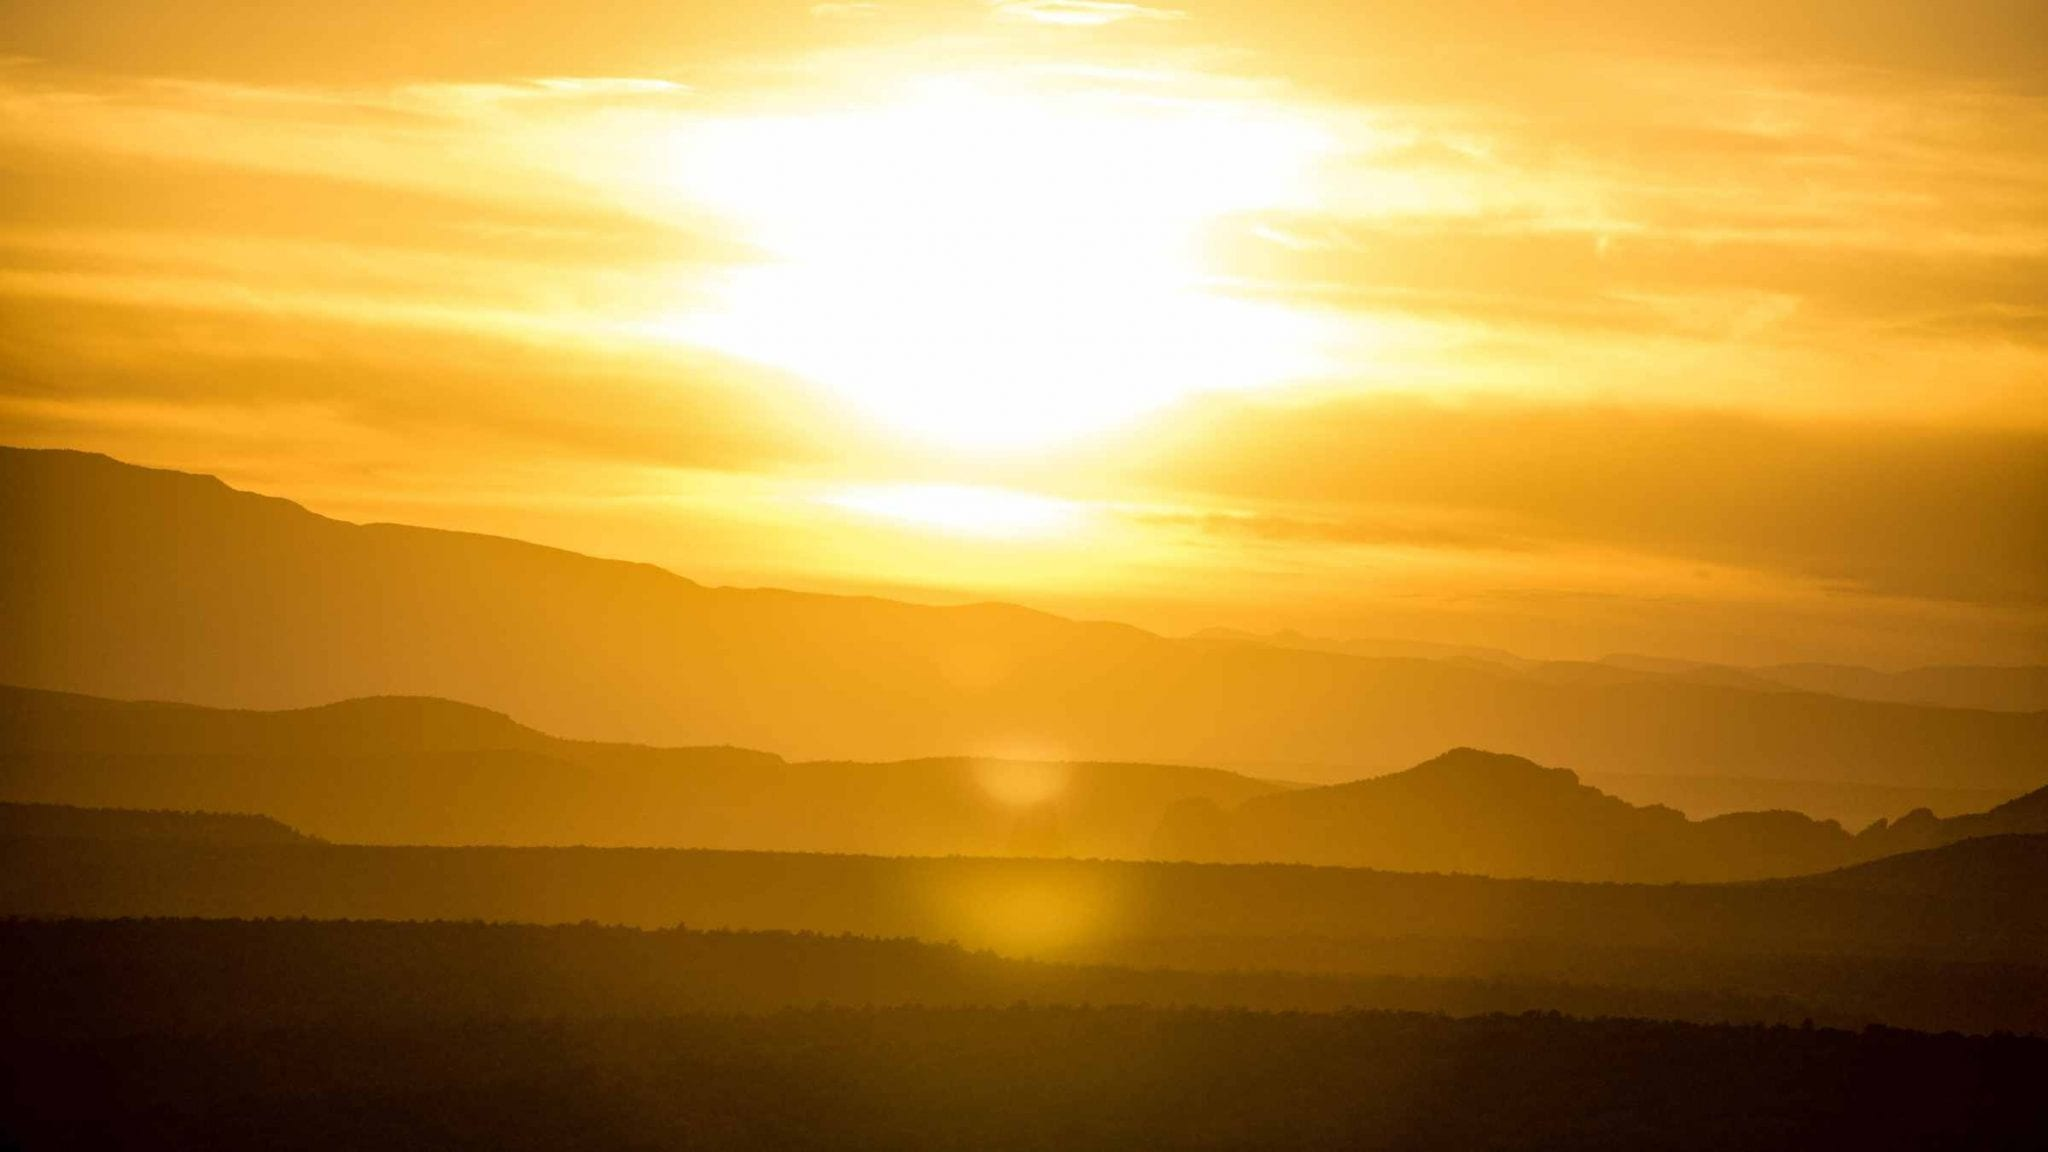 Hot Sun - New climate normals mean hotter, drier conditions for Western states.